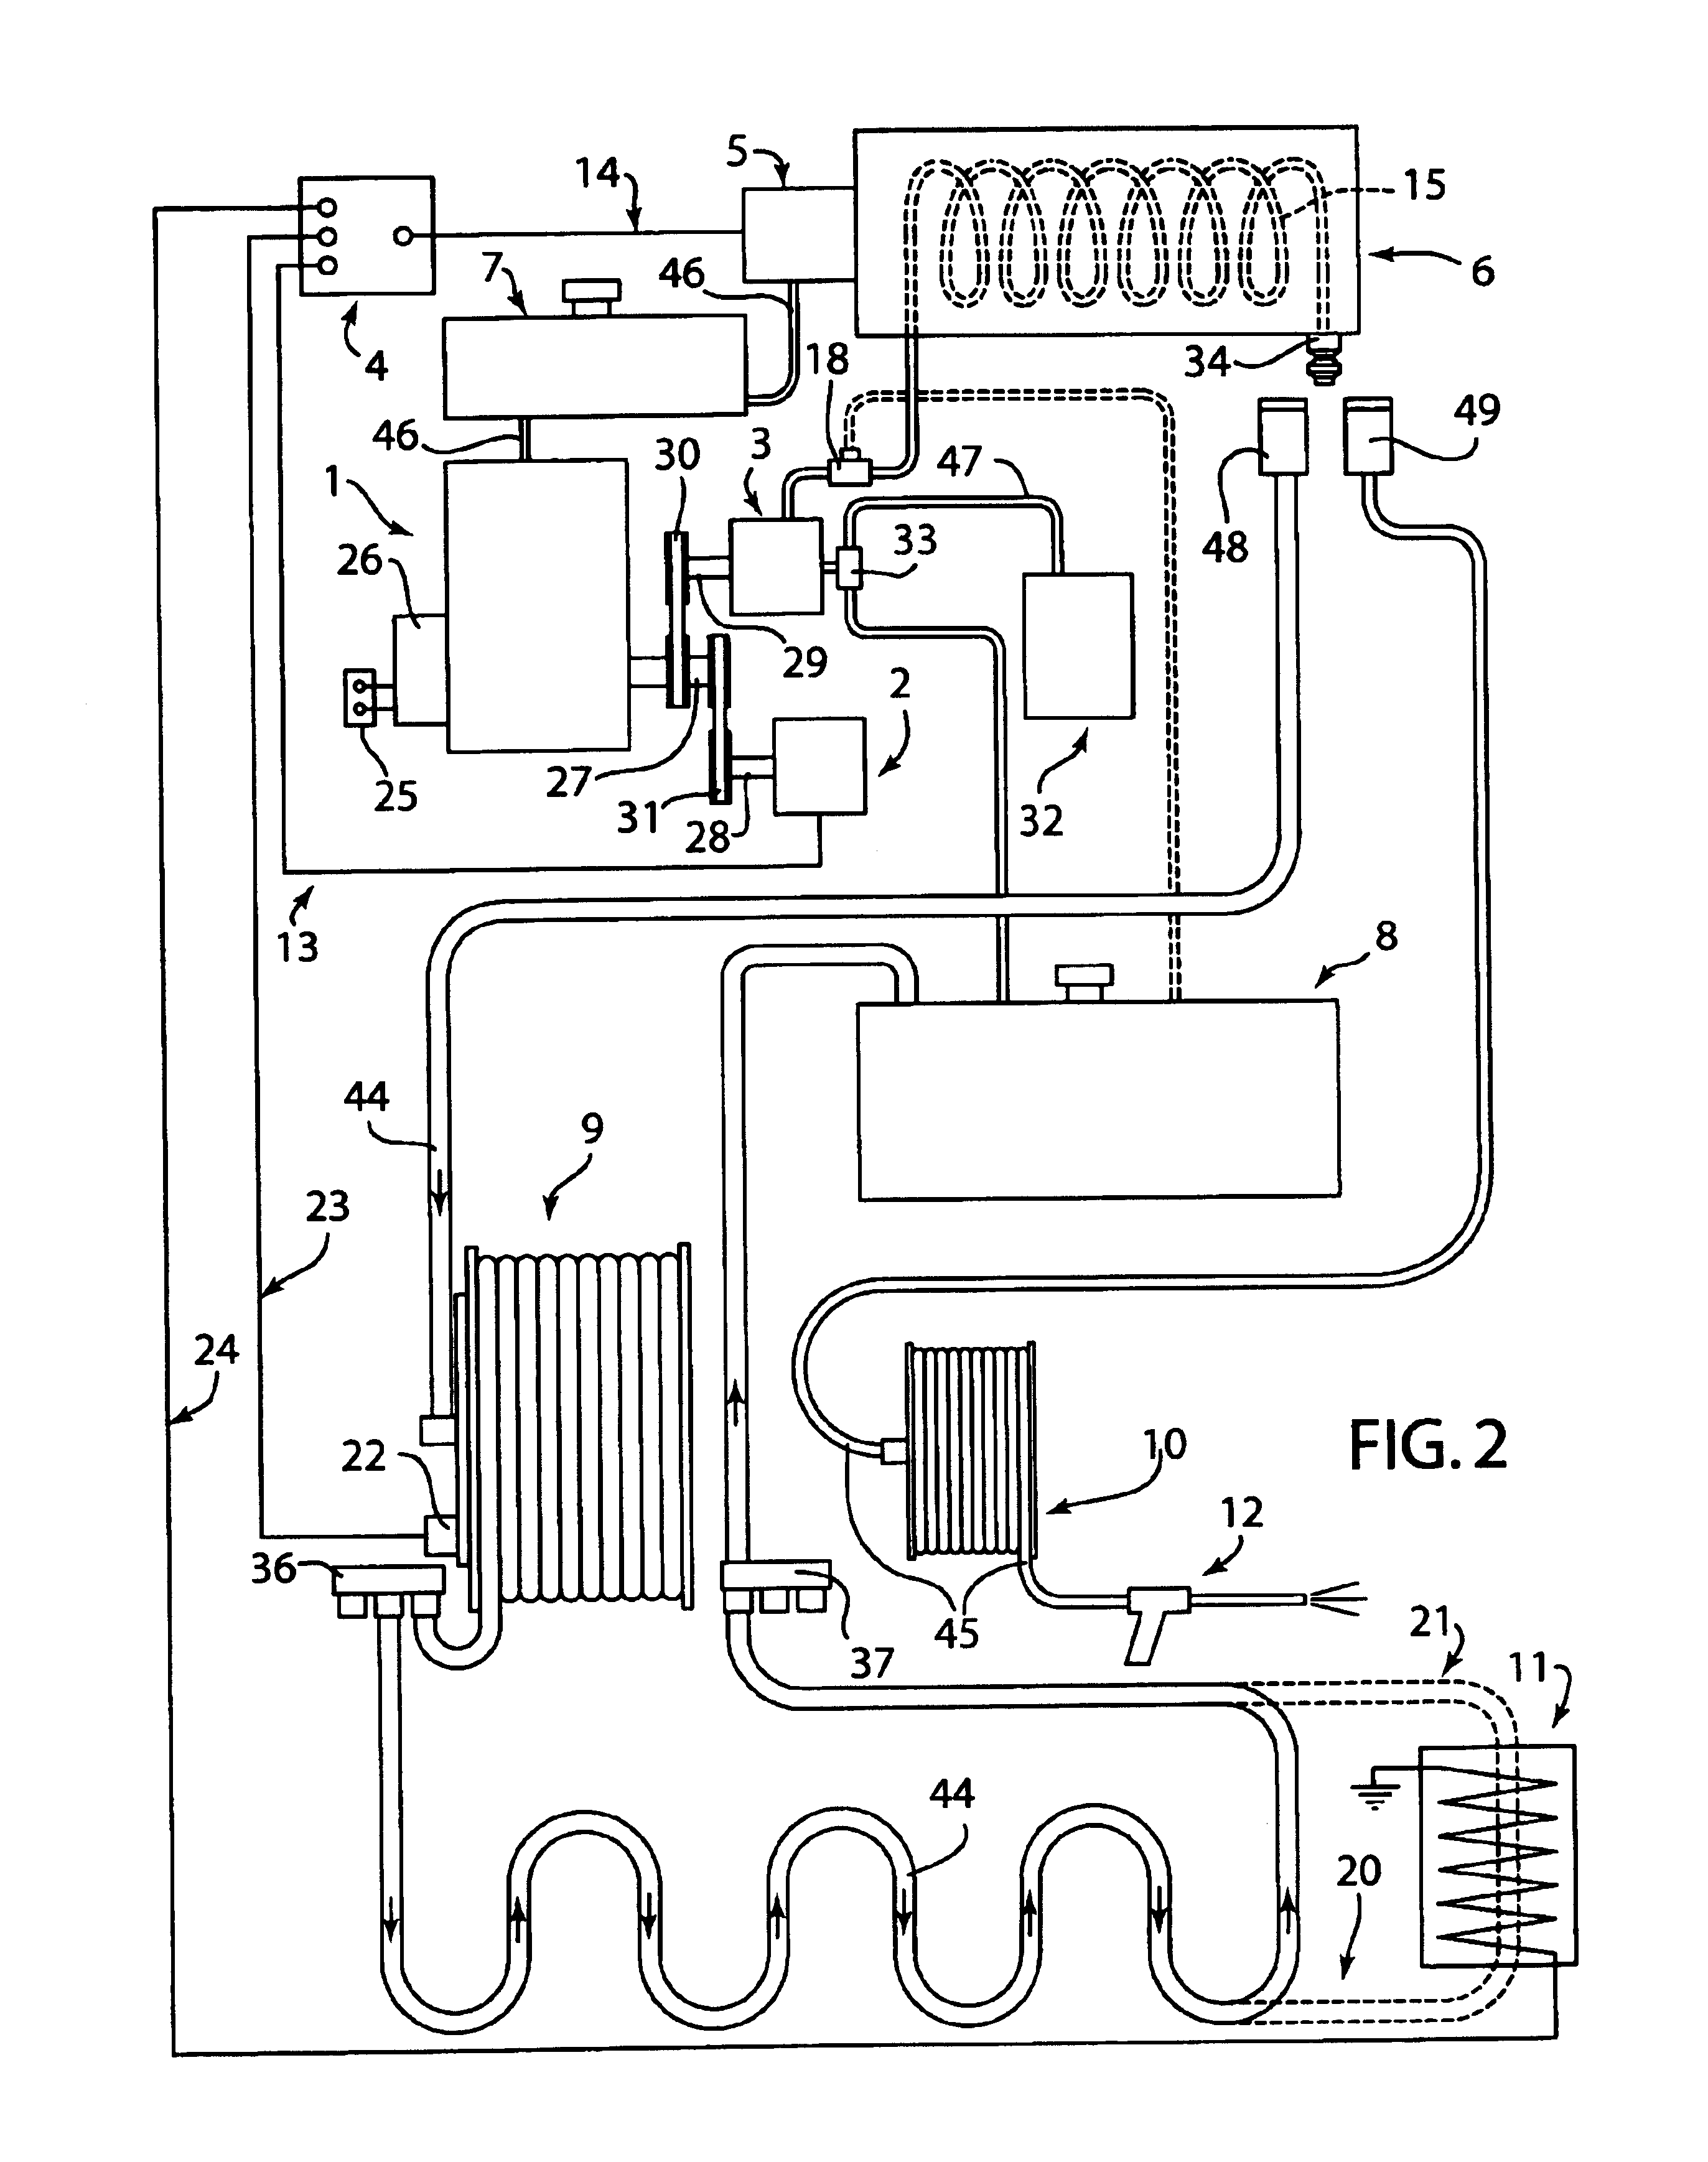 patent us6761135 - multipurpose assembly